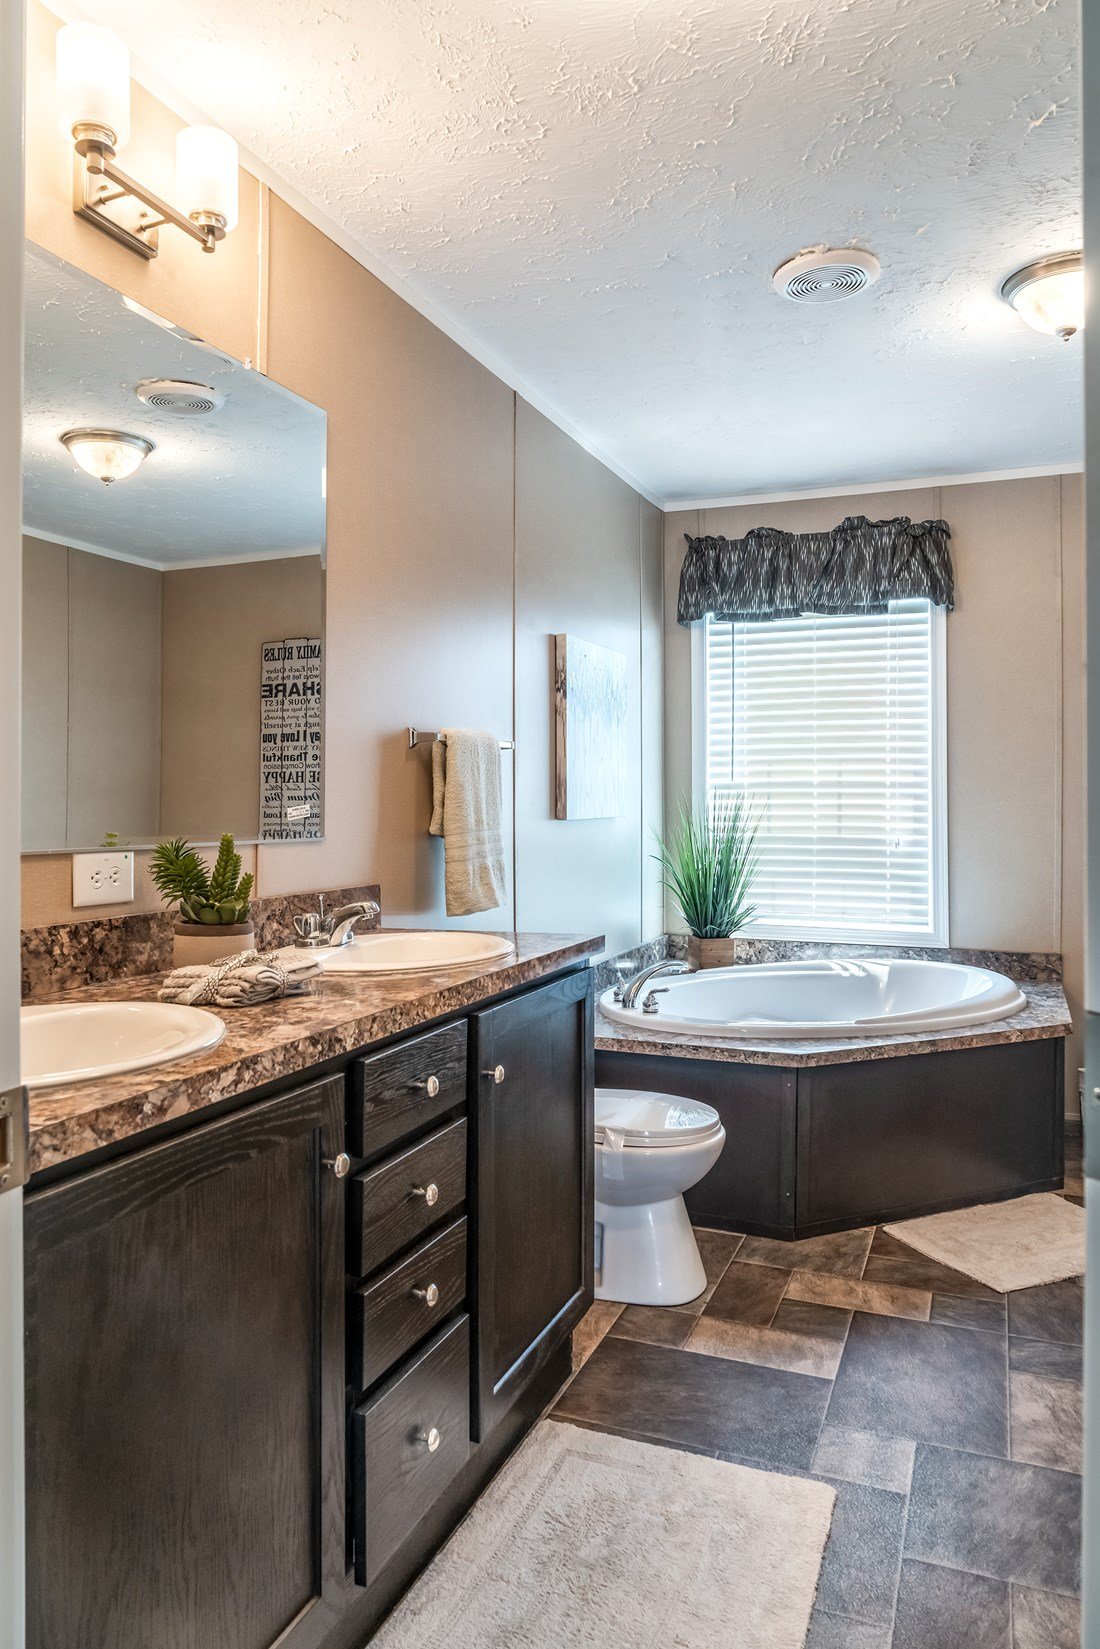 The 5604 ENTERPRISE 4 6428 Master Bathroom. This Manufactured Mobile Home features 3 bedrooms and 2 baths.